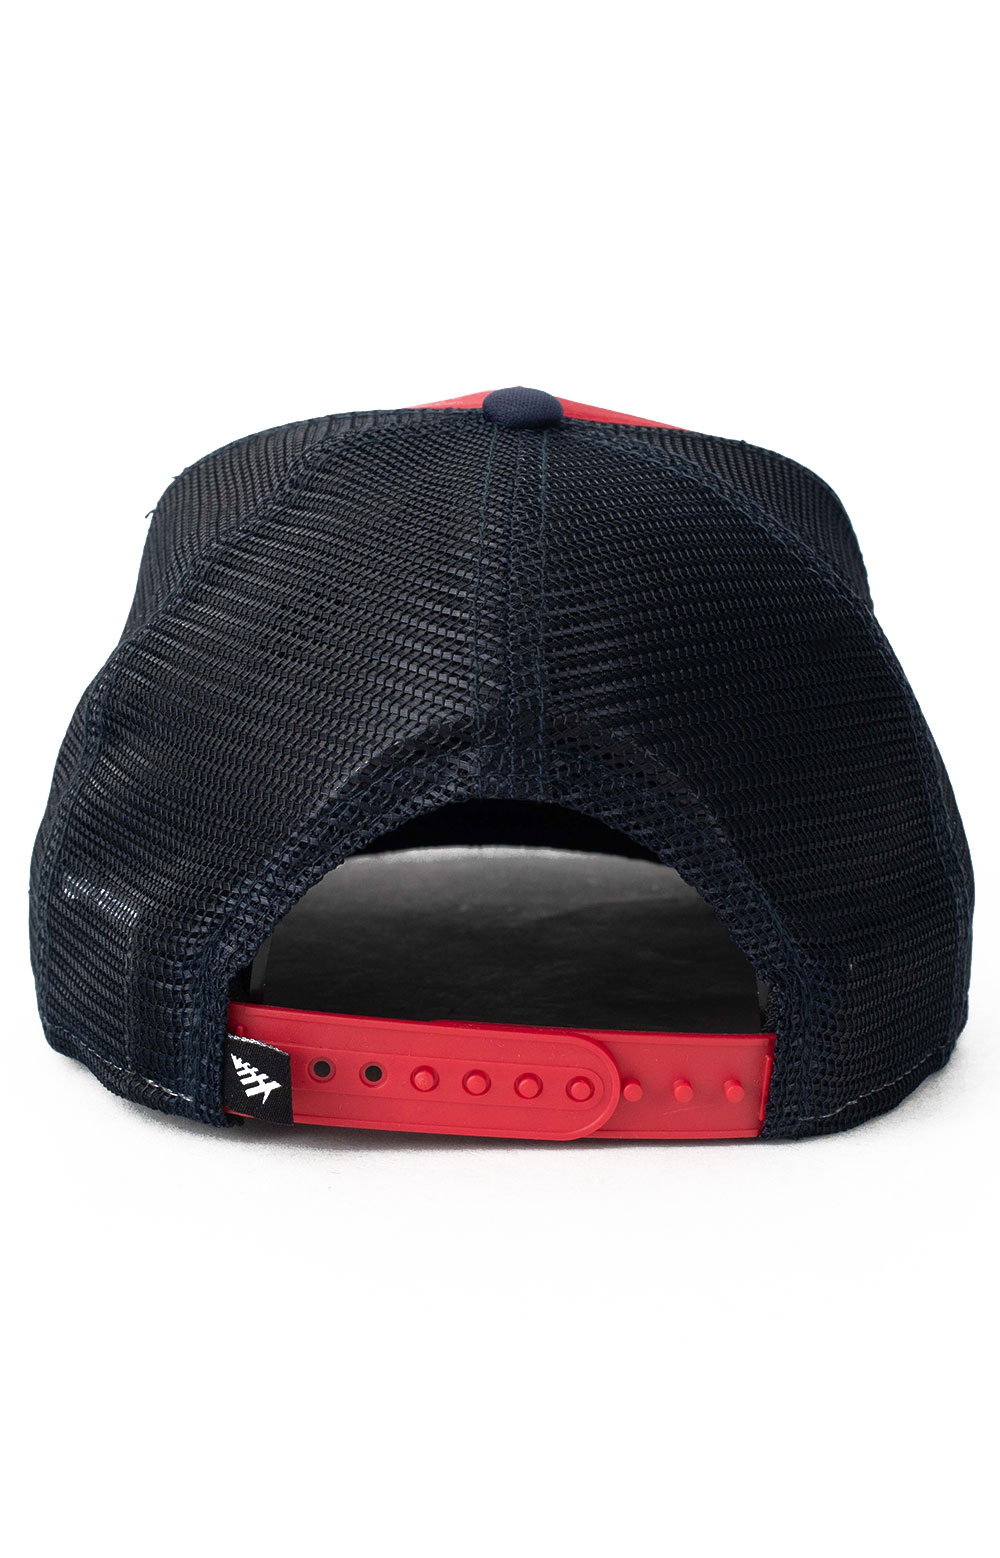 Planes Crew Trucker Two Tone Old School Snap-Back Hat - Red/Navy 3